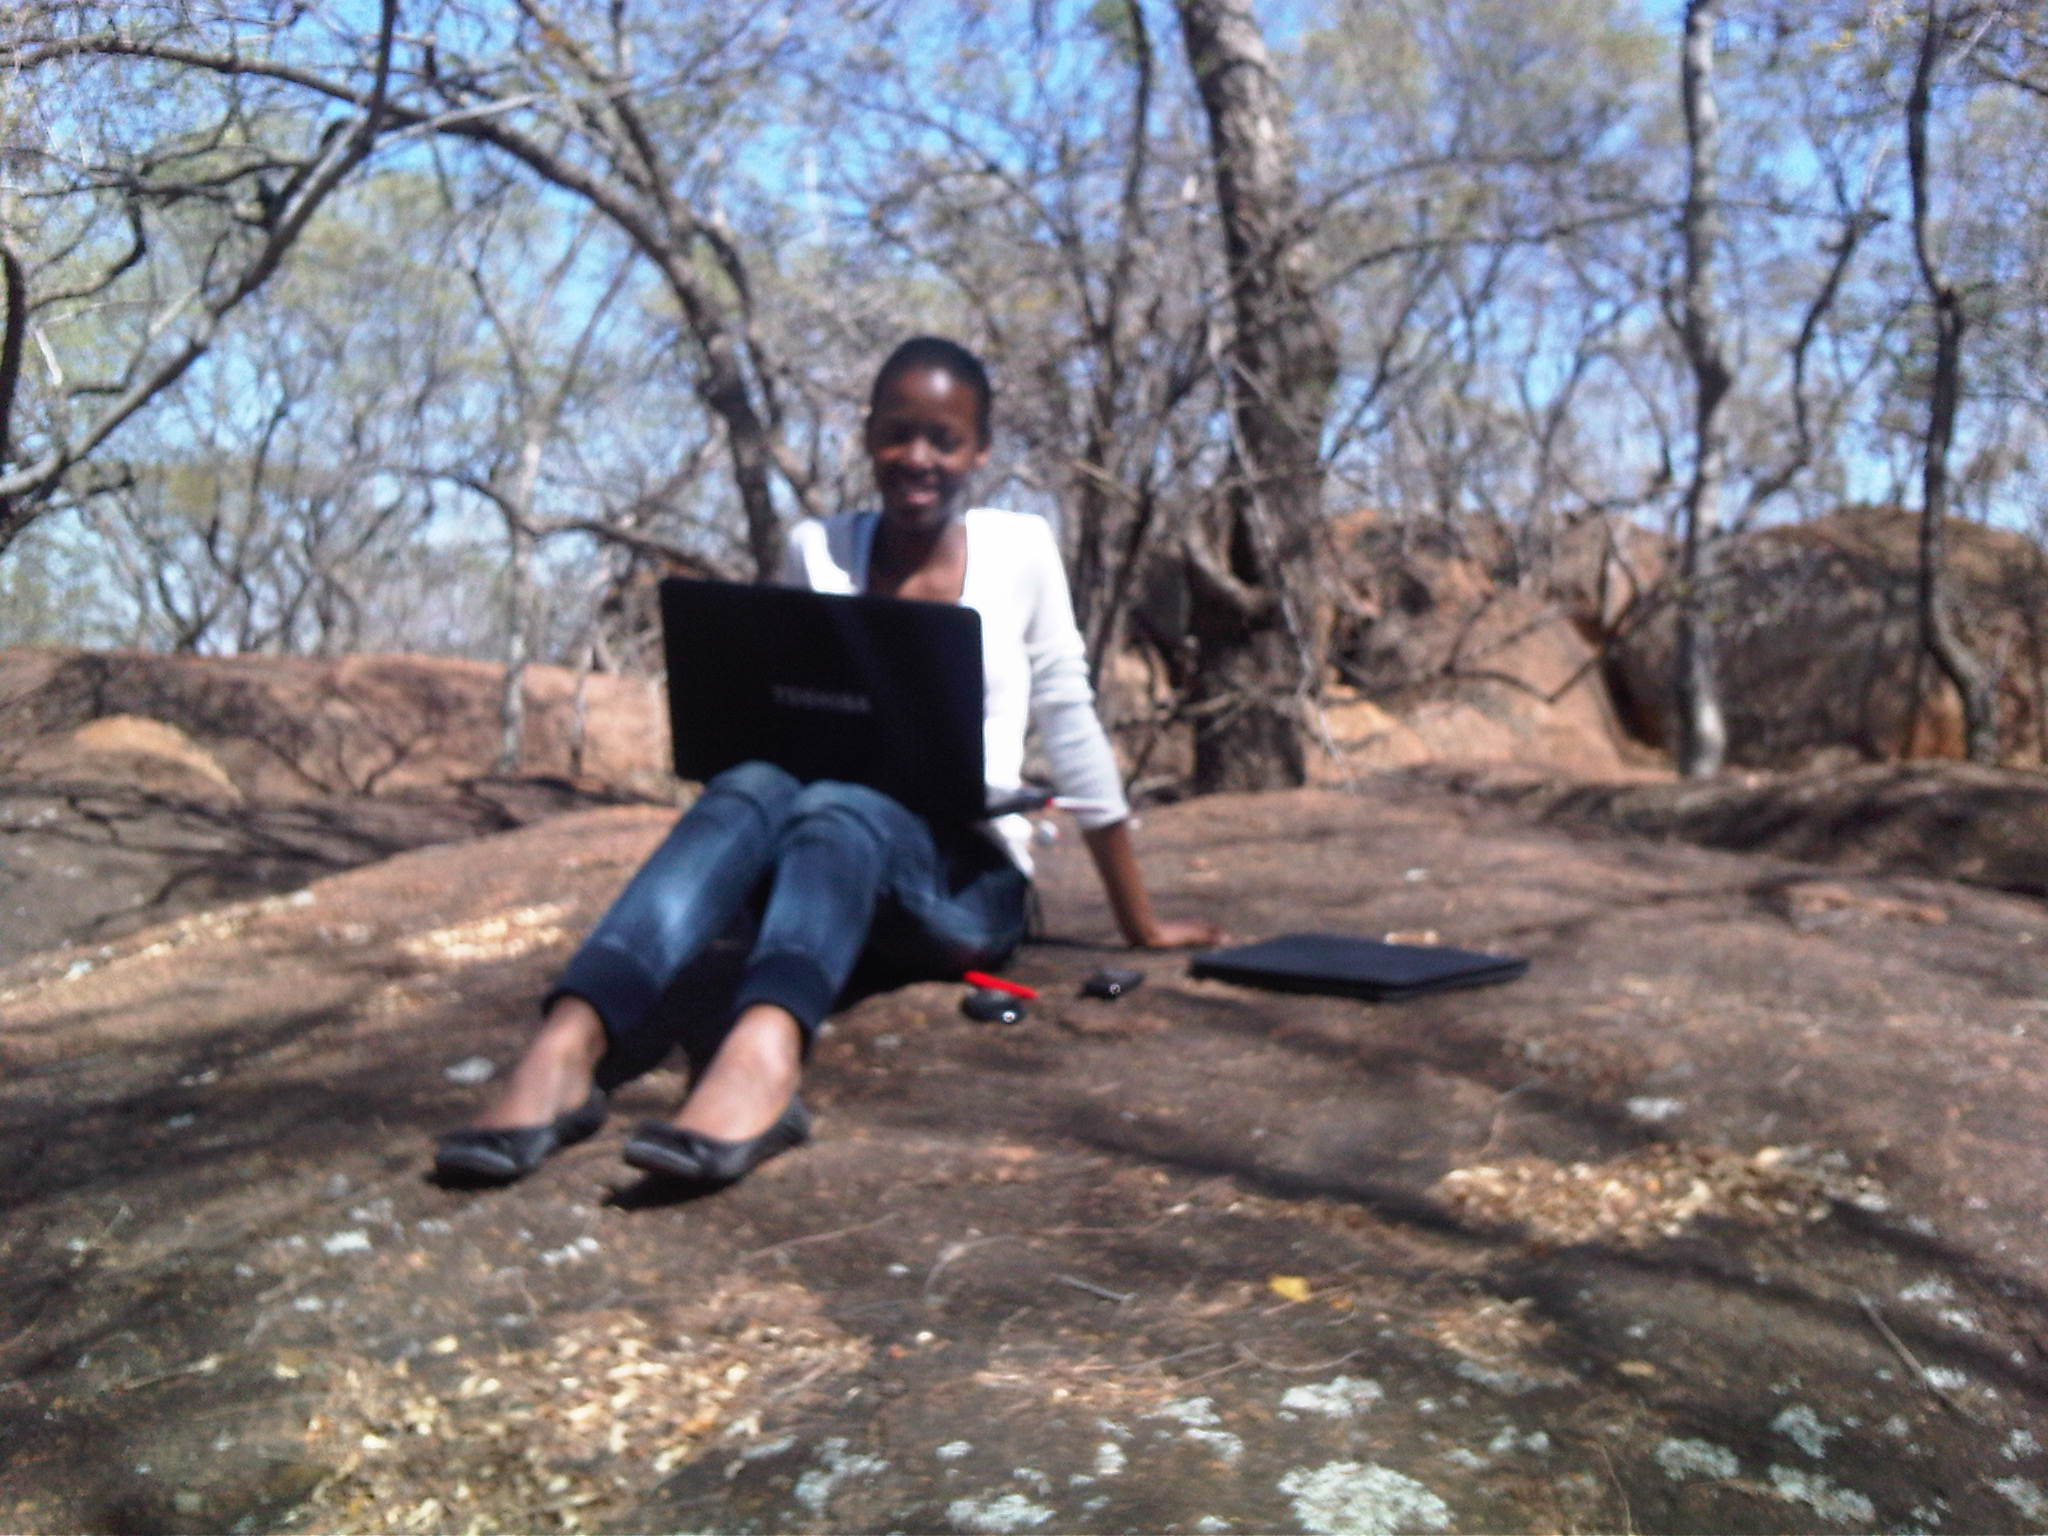 Phindiwe Nkosi on a rock at Dikhololo Game Reserve. Photo by LN.